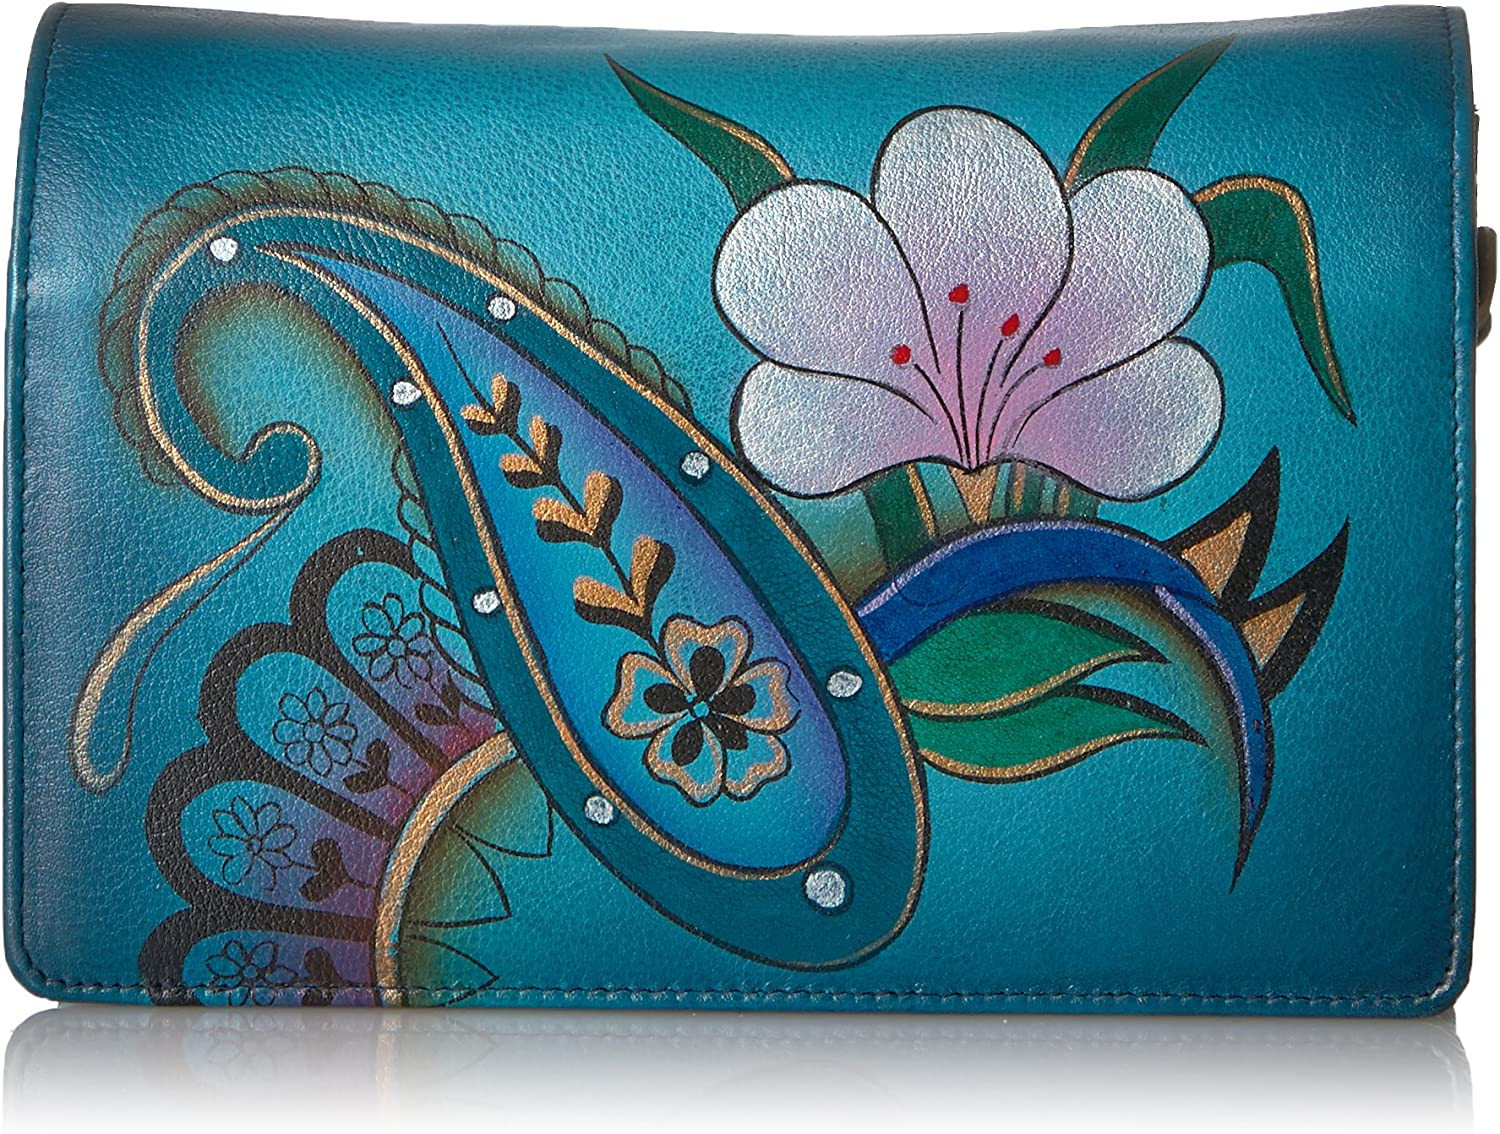 Anna By Anuschka Handpainted Leather Women's Two Fold Wallet On A String Wallet, dpfdenim paisley floral, One Size